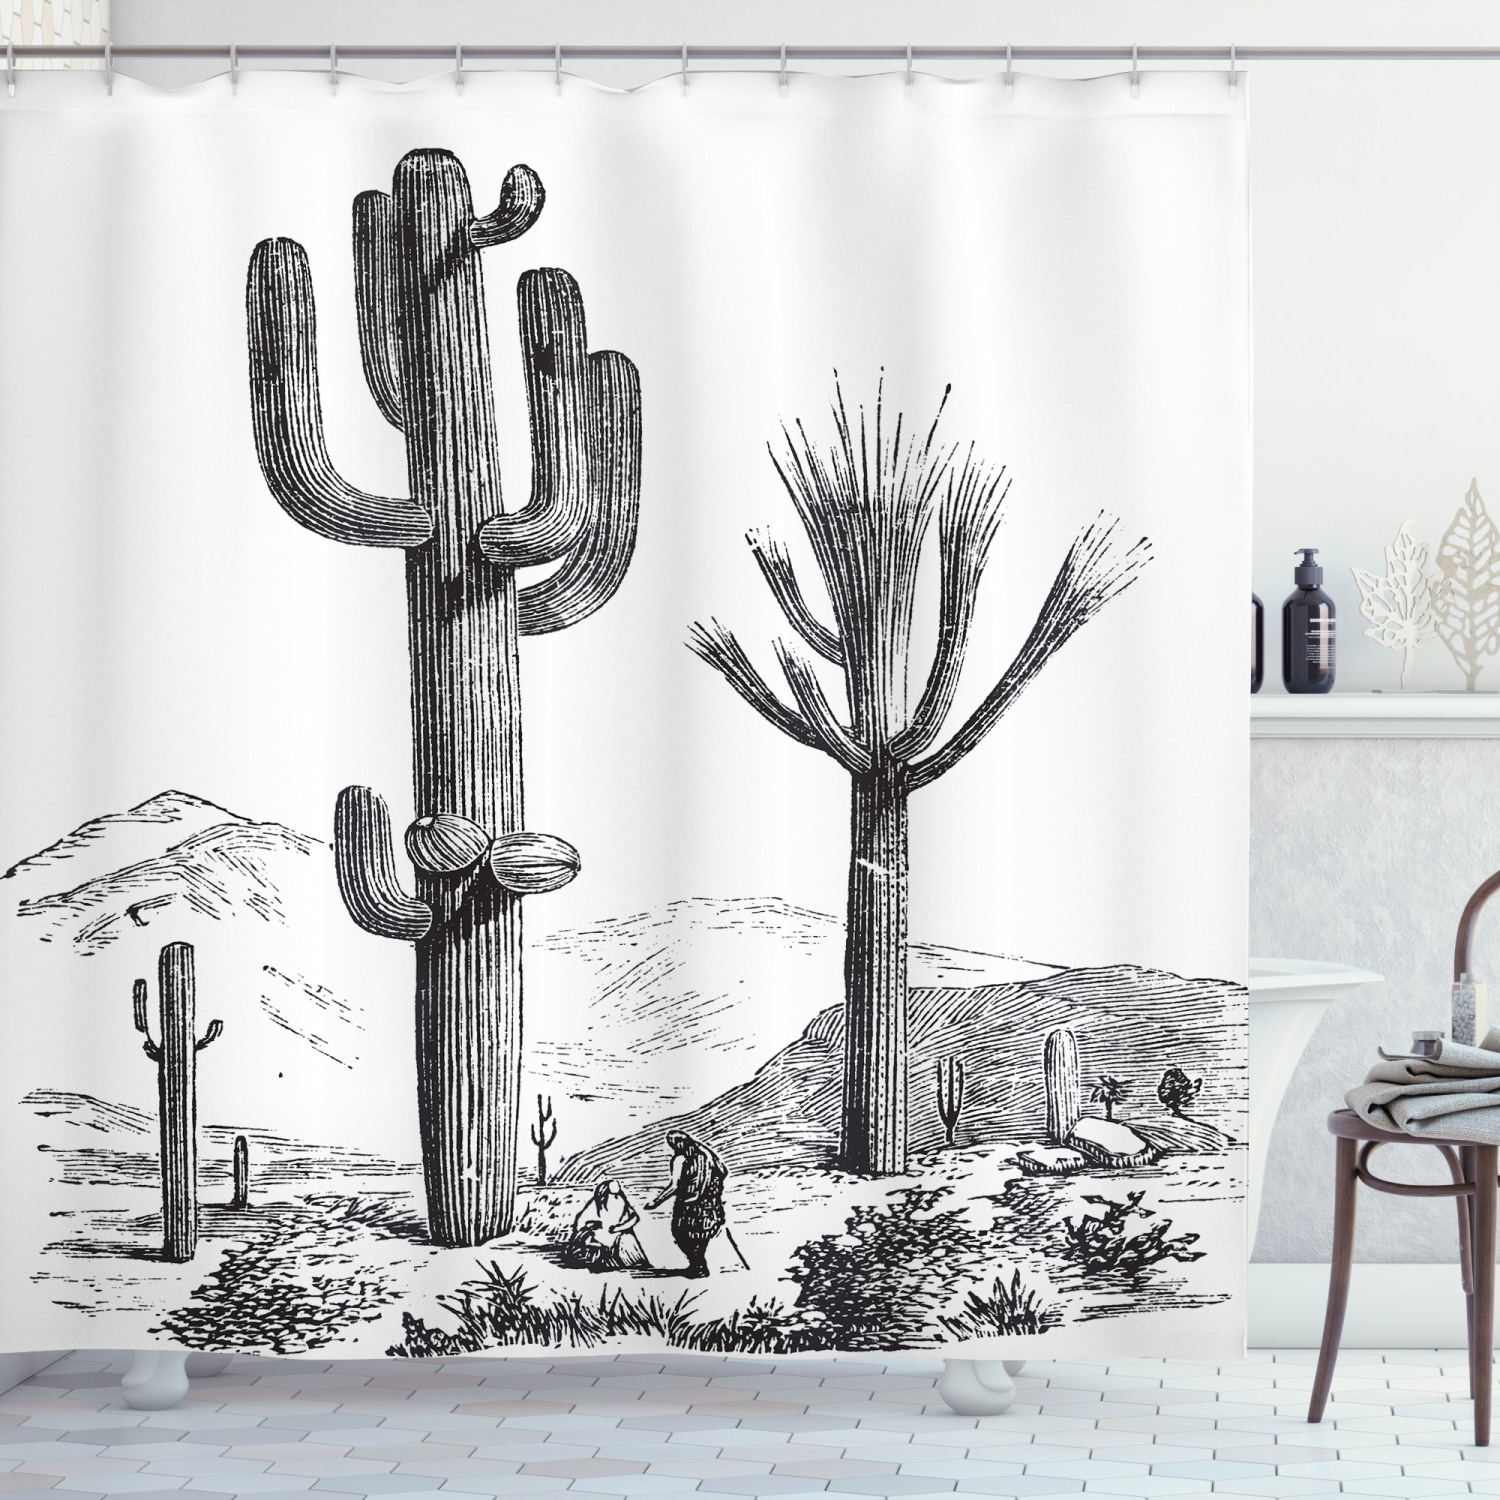 cactus shower curtain sketchy hand drawn print of desert plants with mexican travellers ethnic image fabric bathroom set with hooks charcoal grey